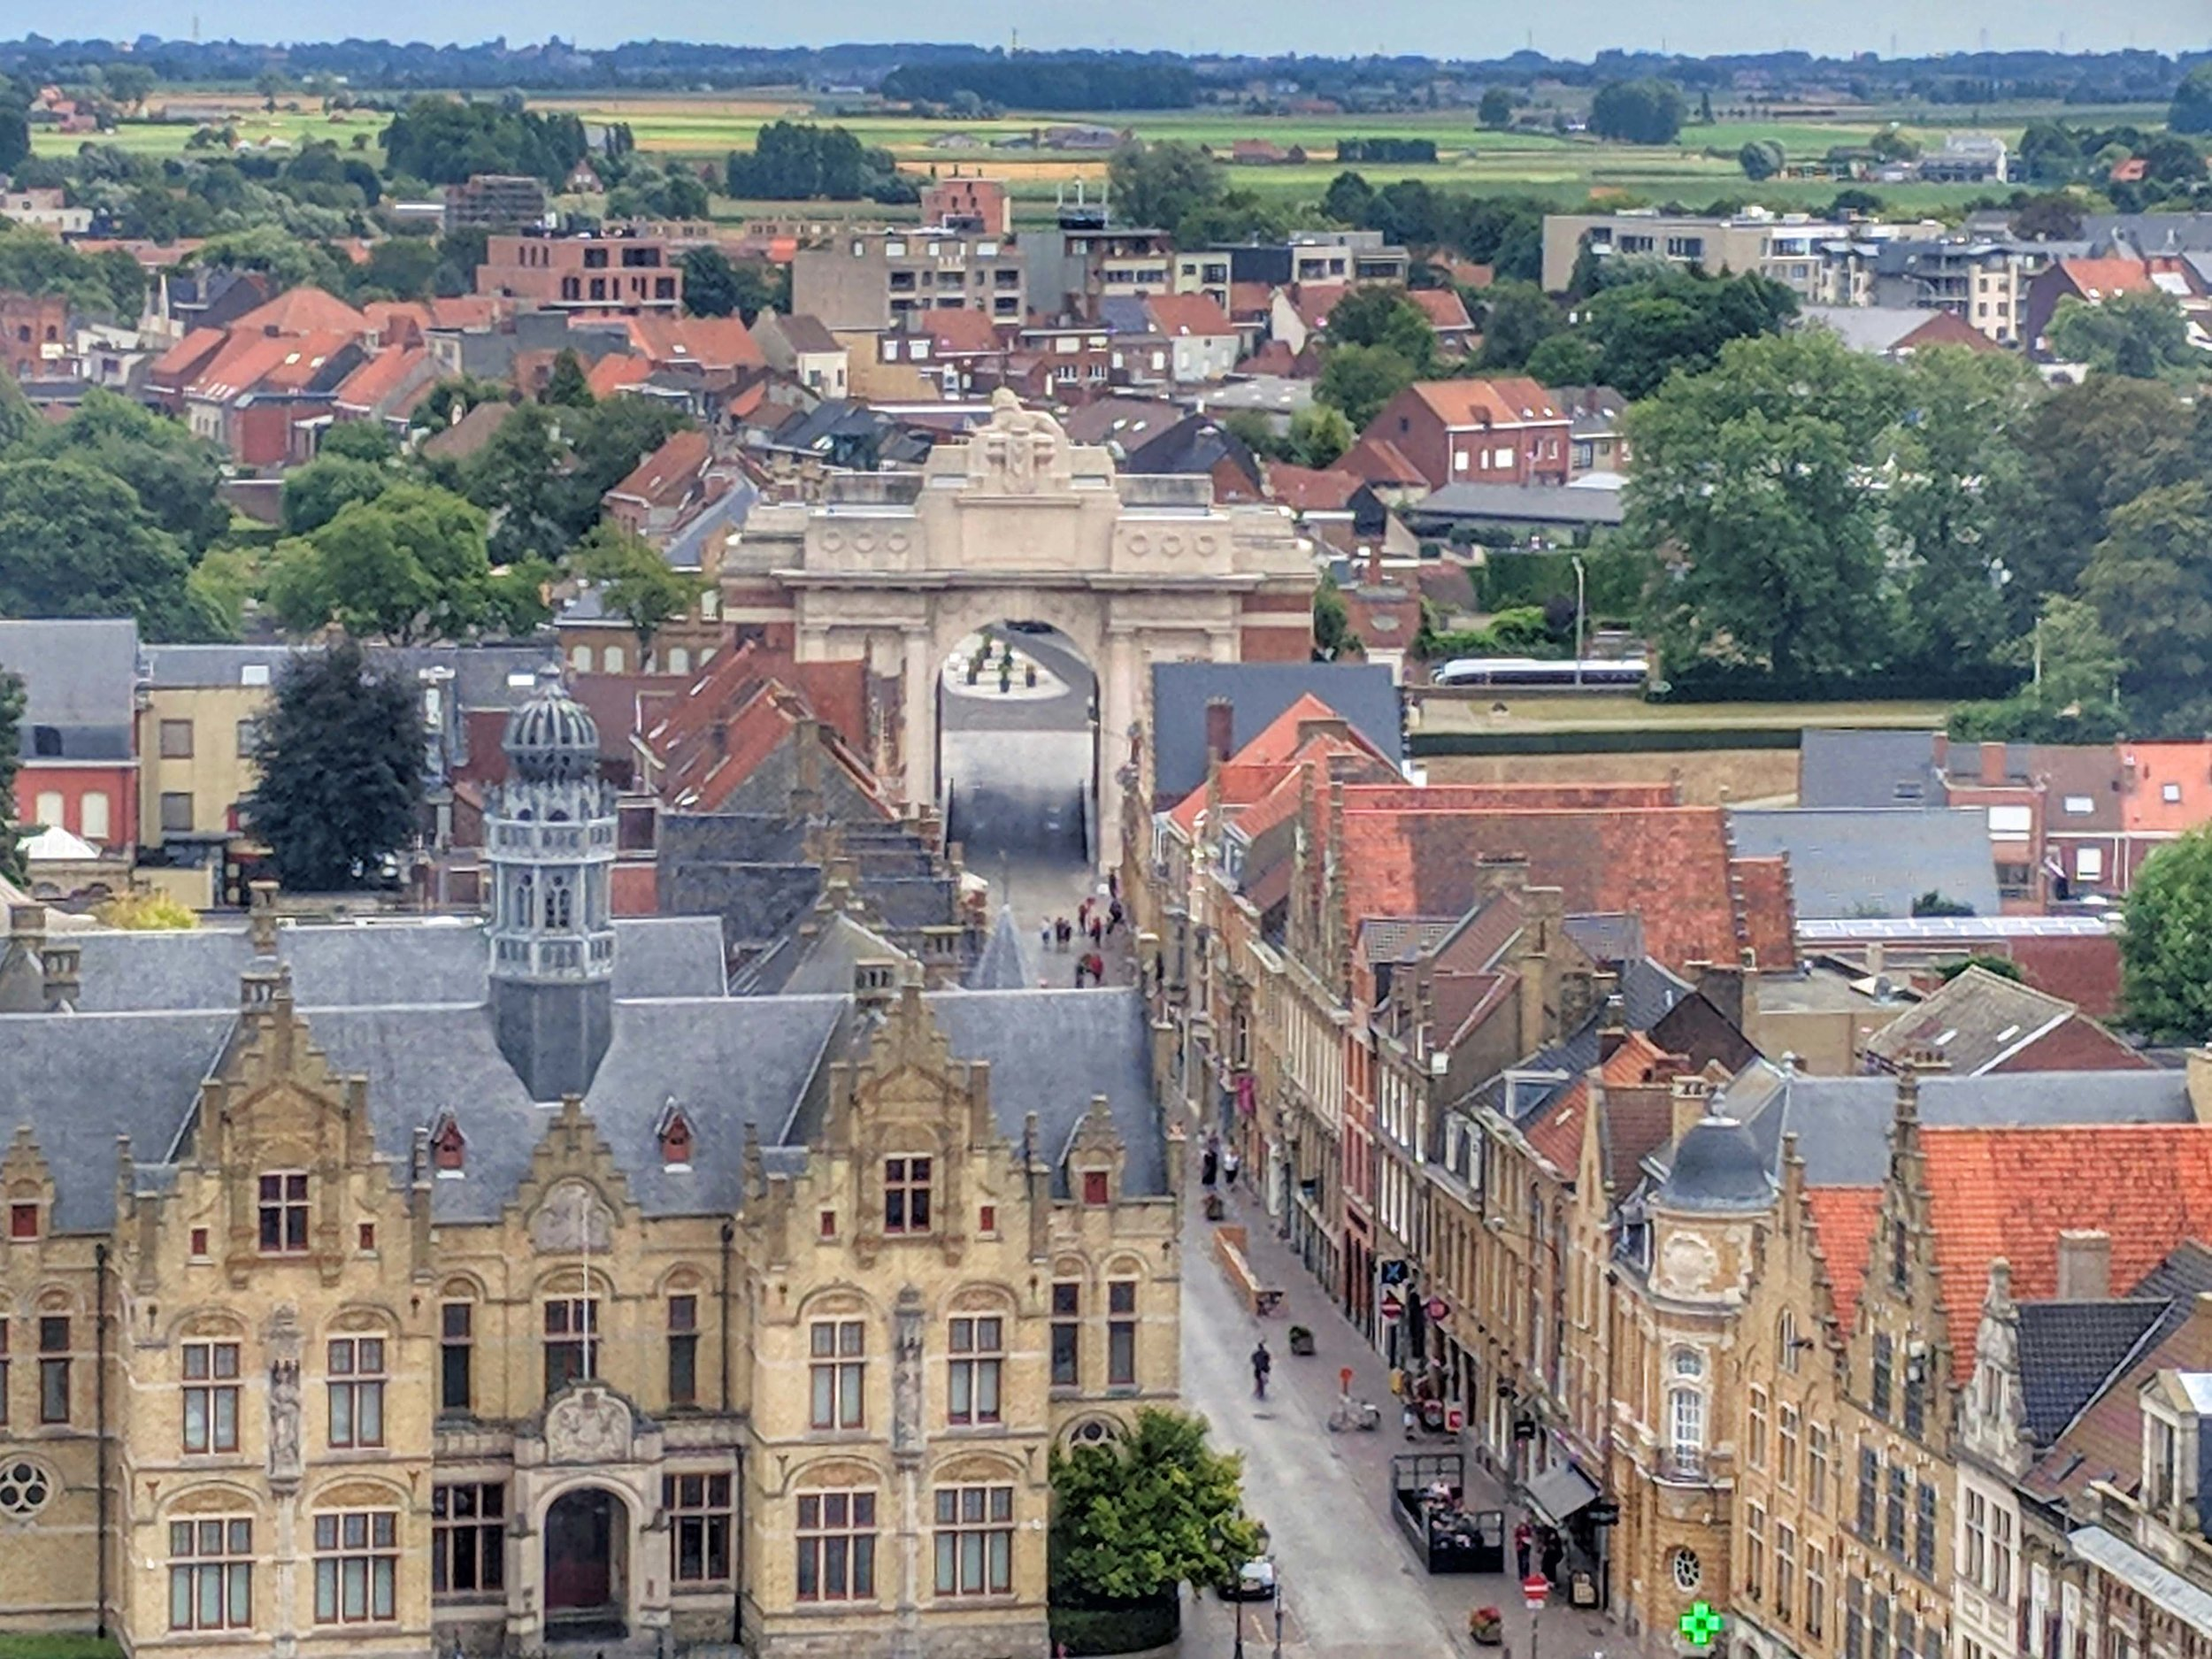 View of The Menin Gate from the Tower of The Cloth Hall